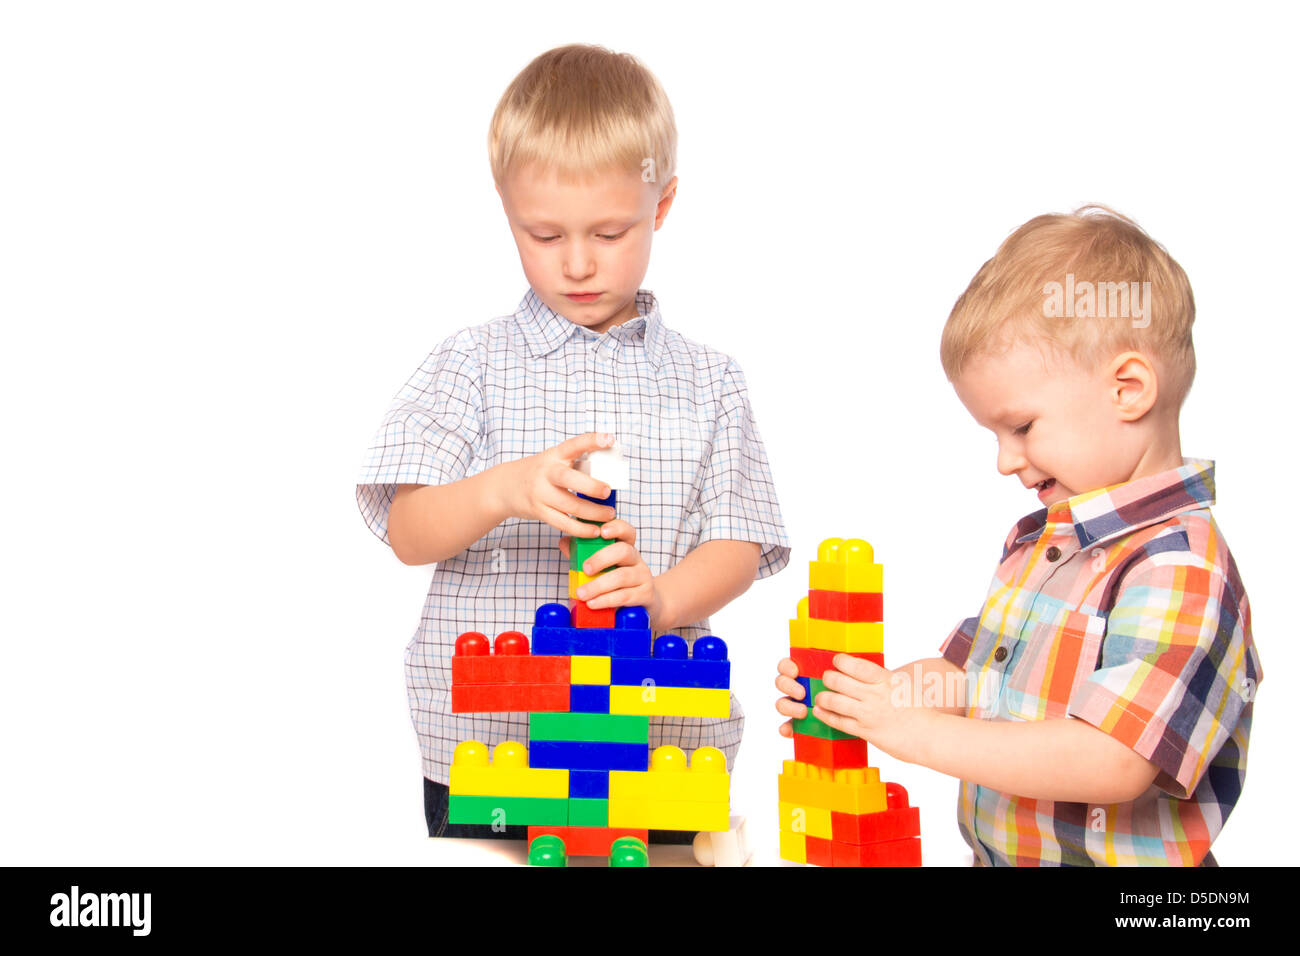 boys brothers children build play constructor plastic creative - Stock Image